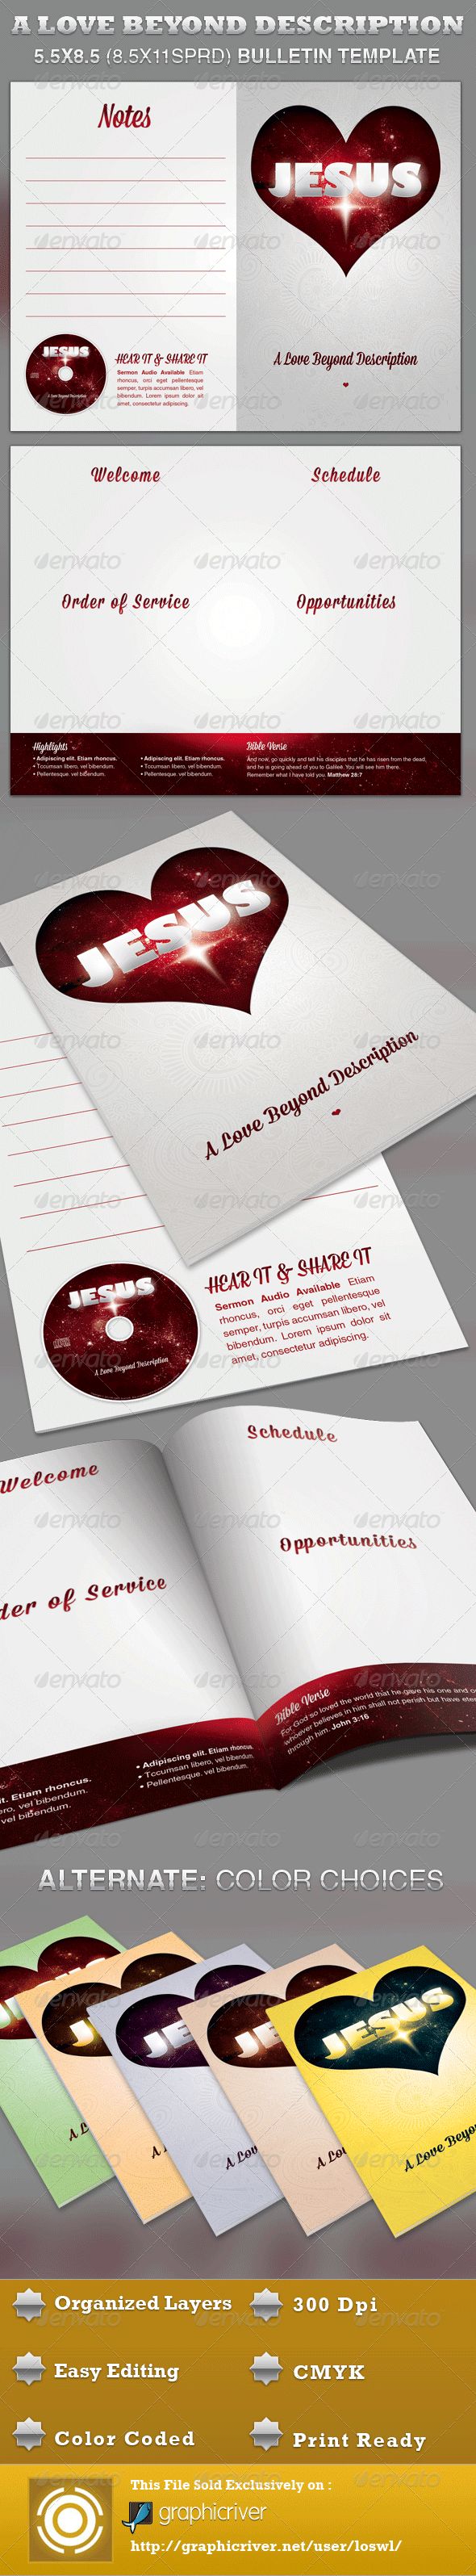 The A Love Beyond Description Church Bulletin Template is great for any Church Event, especially design for Christmas and Easter Events but it can be applied to any topic dealing with the Love of Jesus. Use it for Sermons, Pageants and Musicals, etc. The layered Photoshop files are color coded and organized in folders for easy editing. The file also contains 5 – One Click Color options. - $6.00